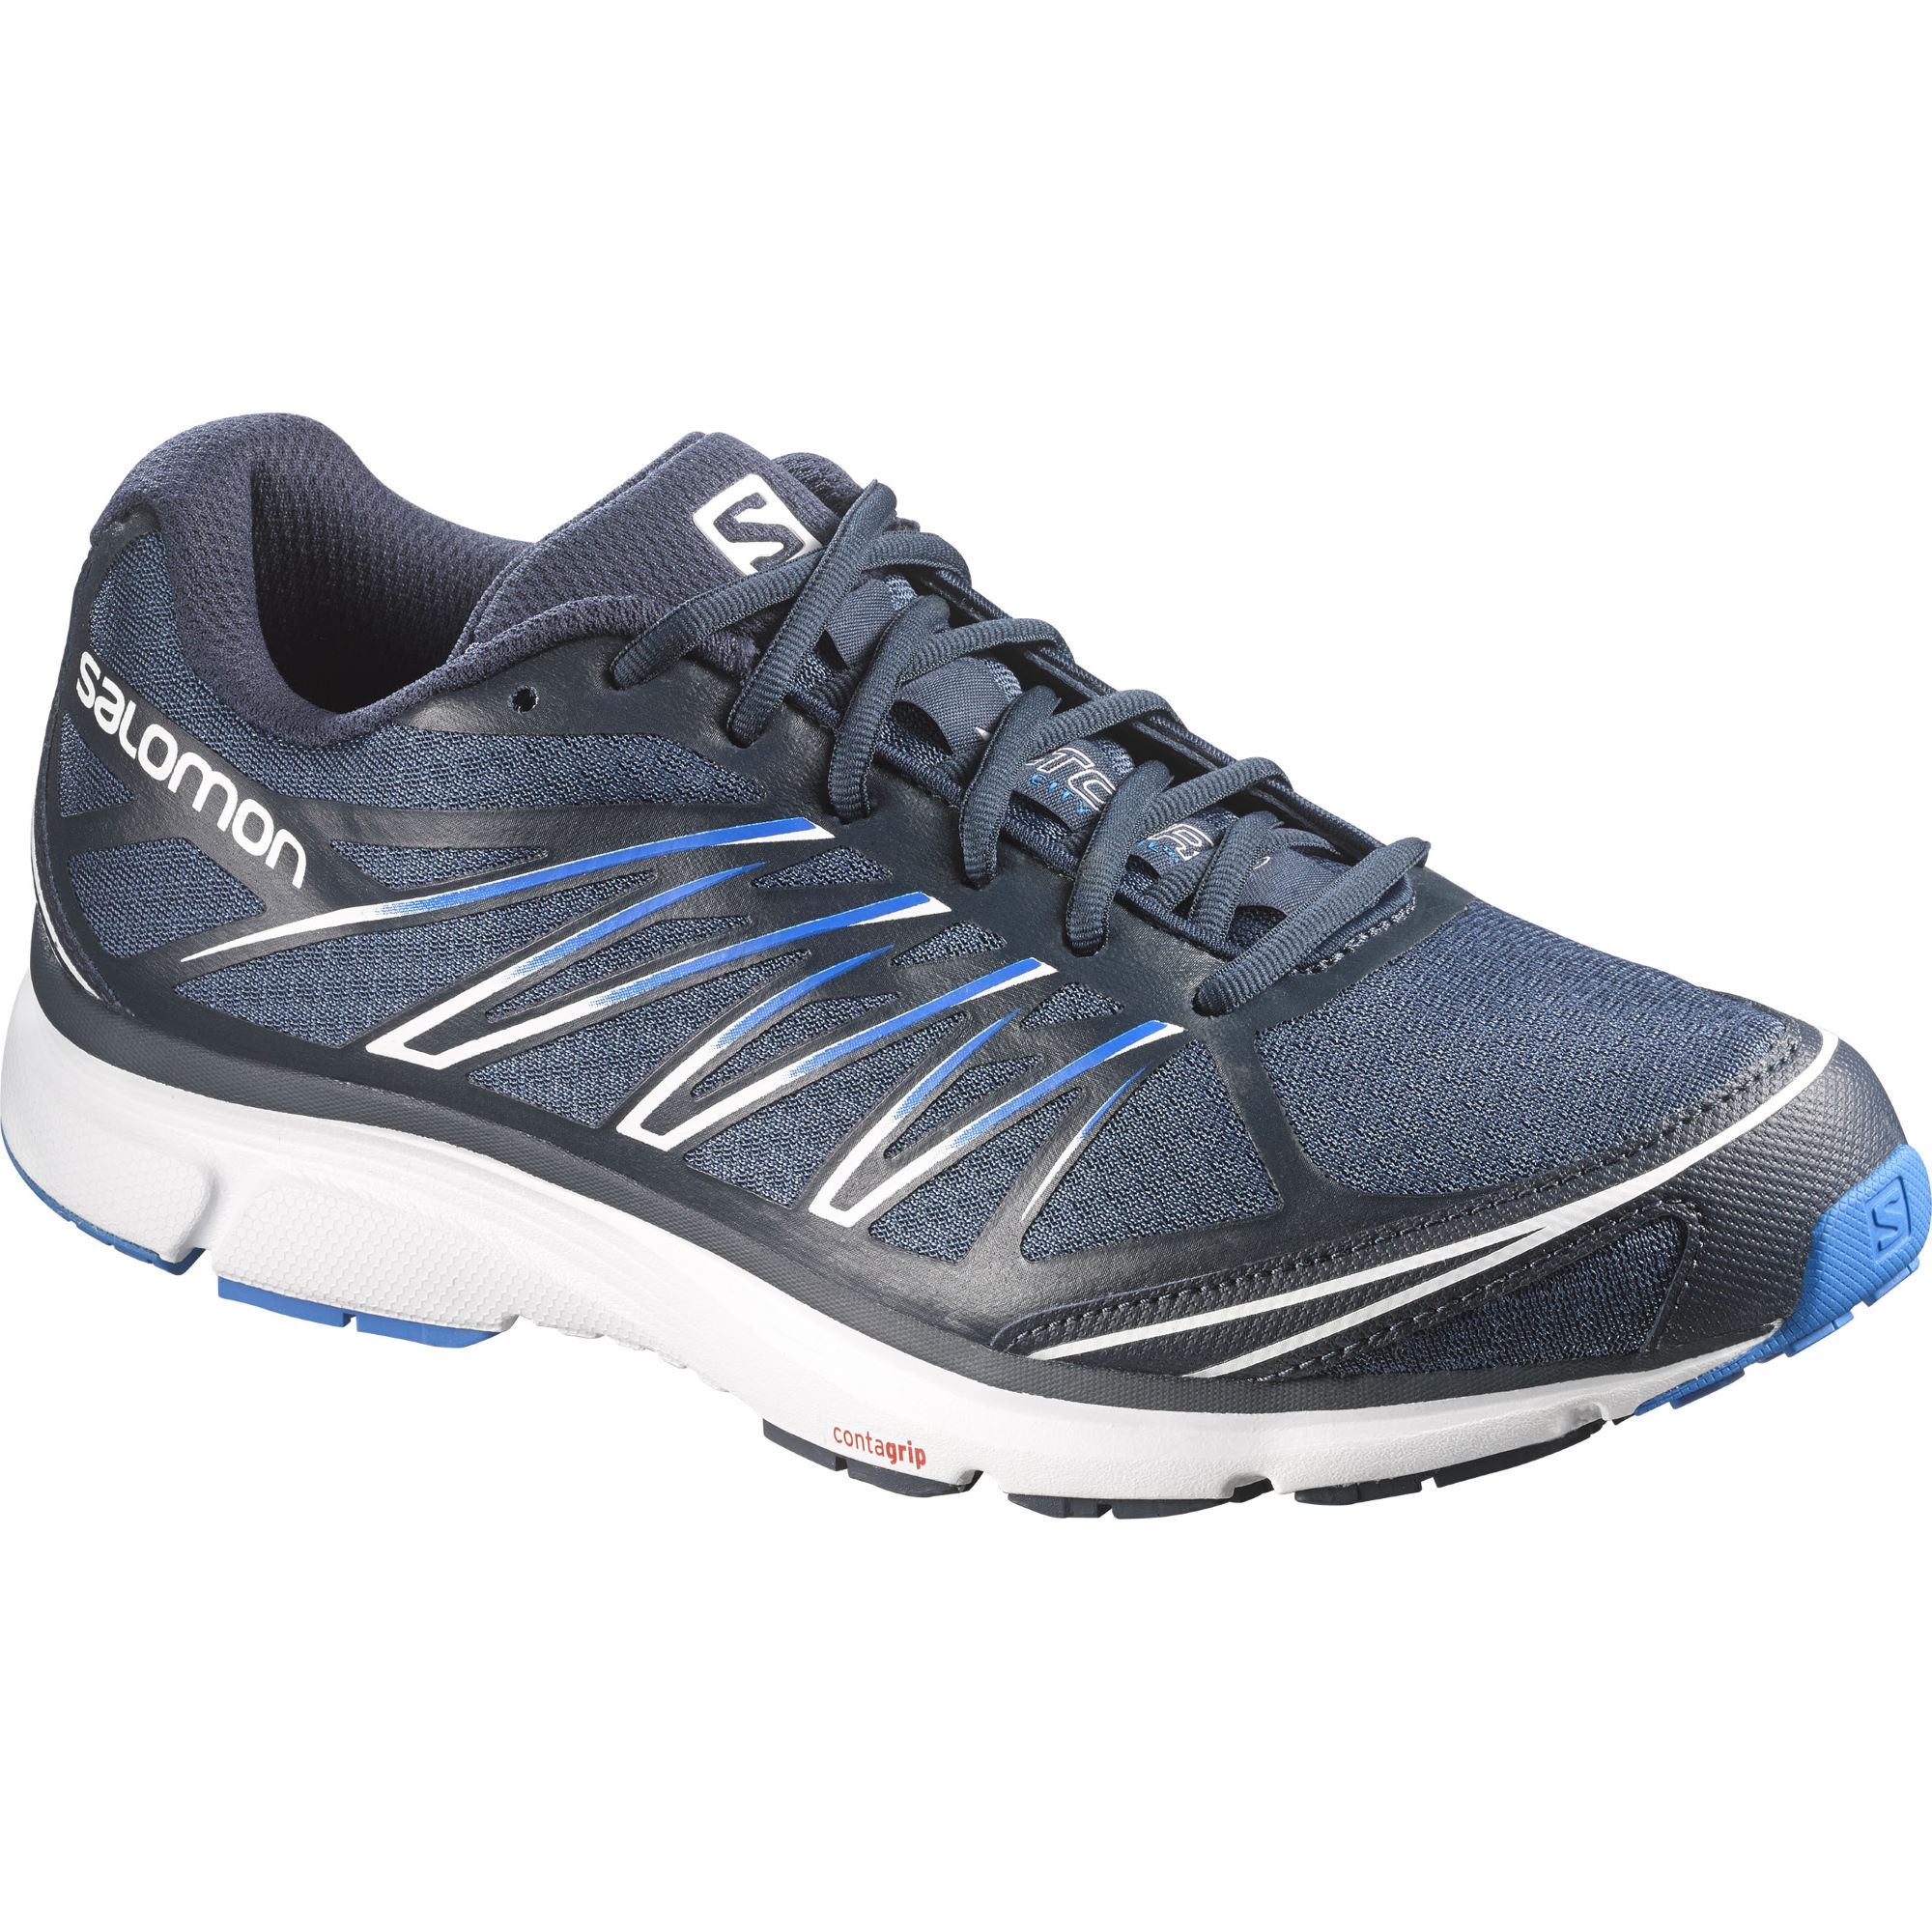 Salomon X Tour  Running Shoes